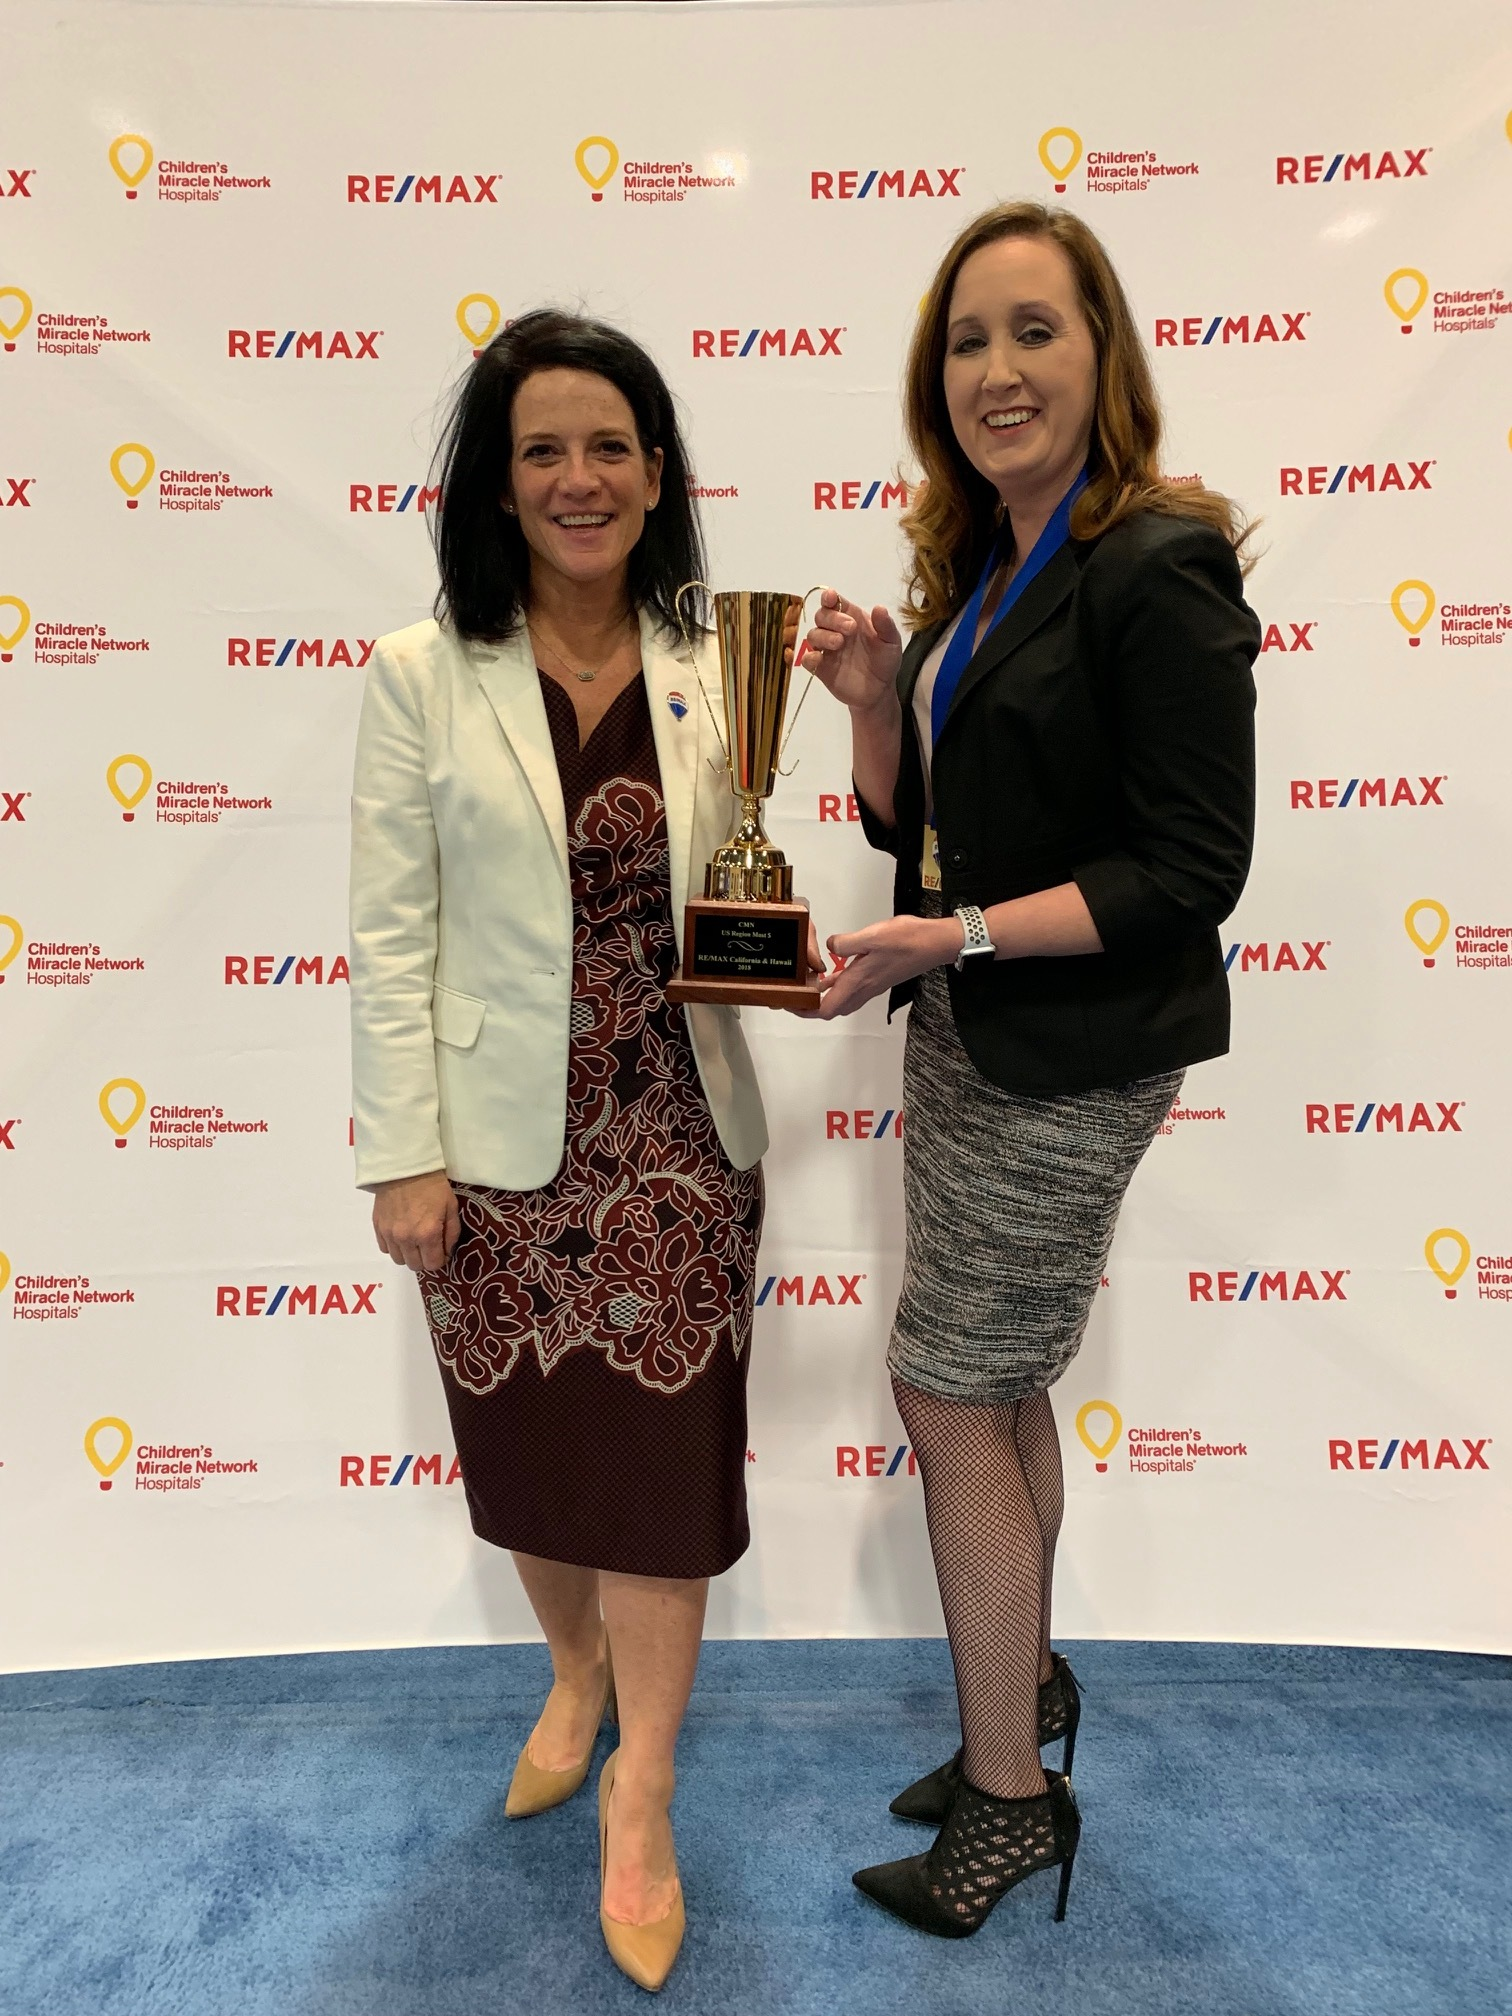 Jackie Schaible from RE/MAX California & Hawaii (Left) with Stephenie Flood, Vice President of Operations (Right)